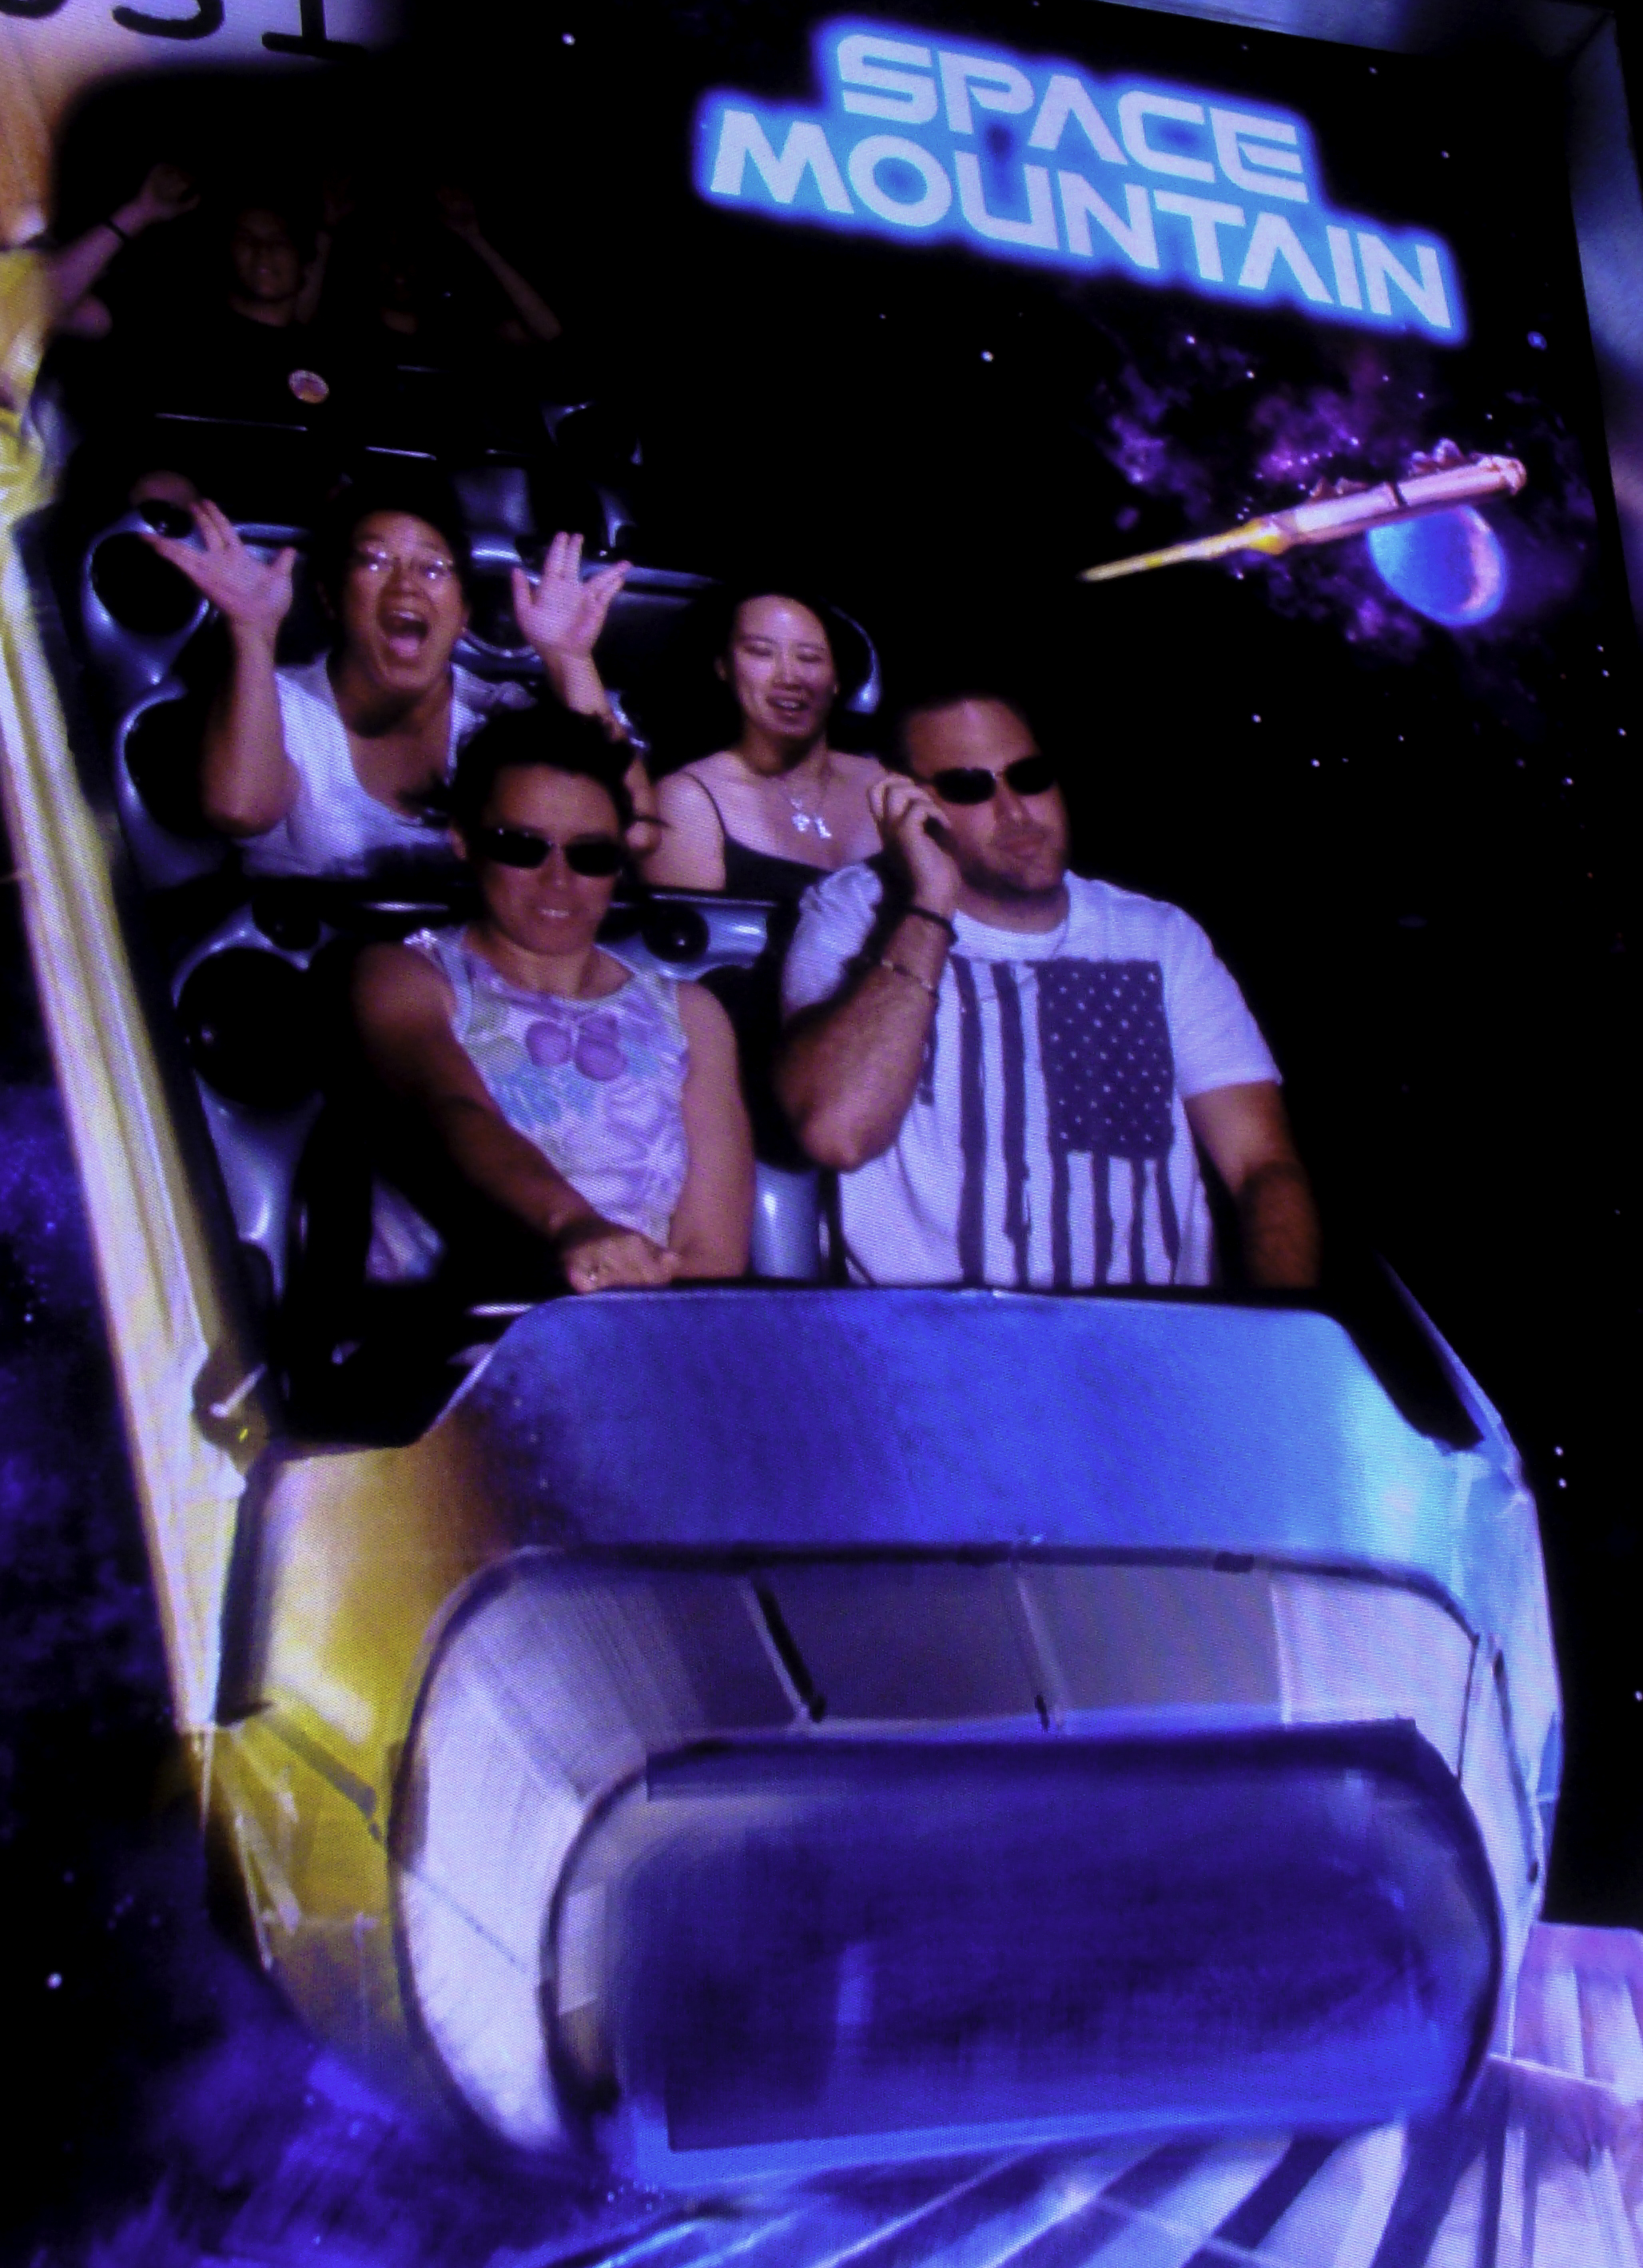 space-mountain-with-sunglasses-on